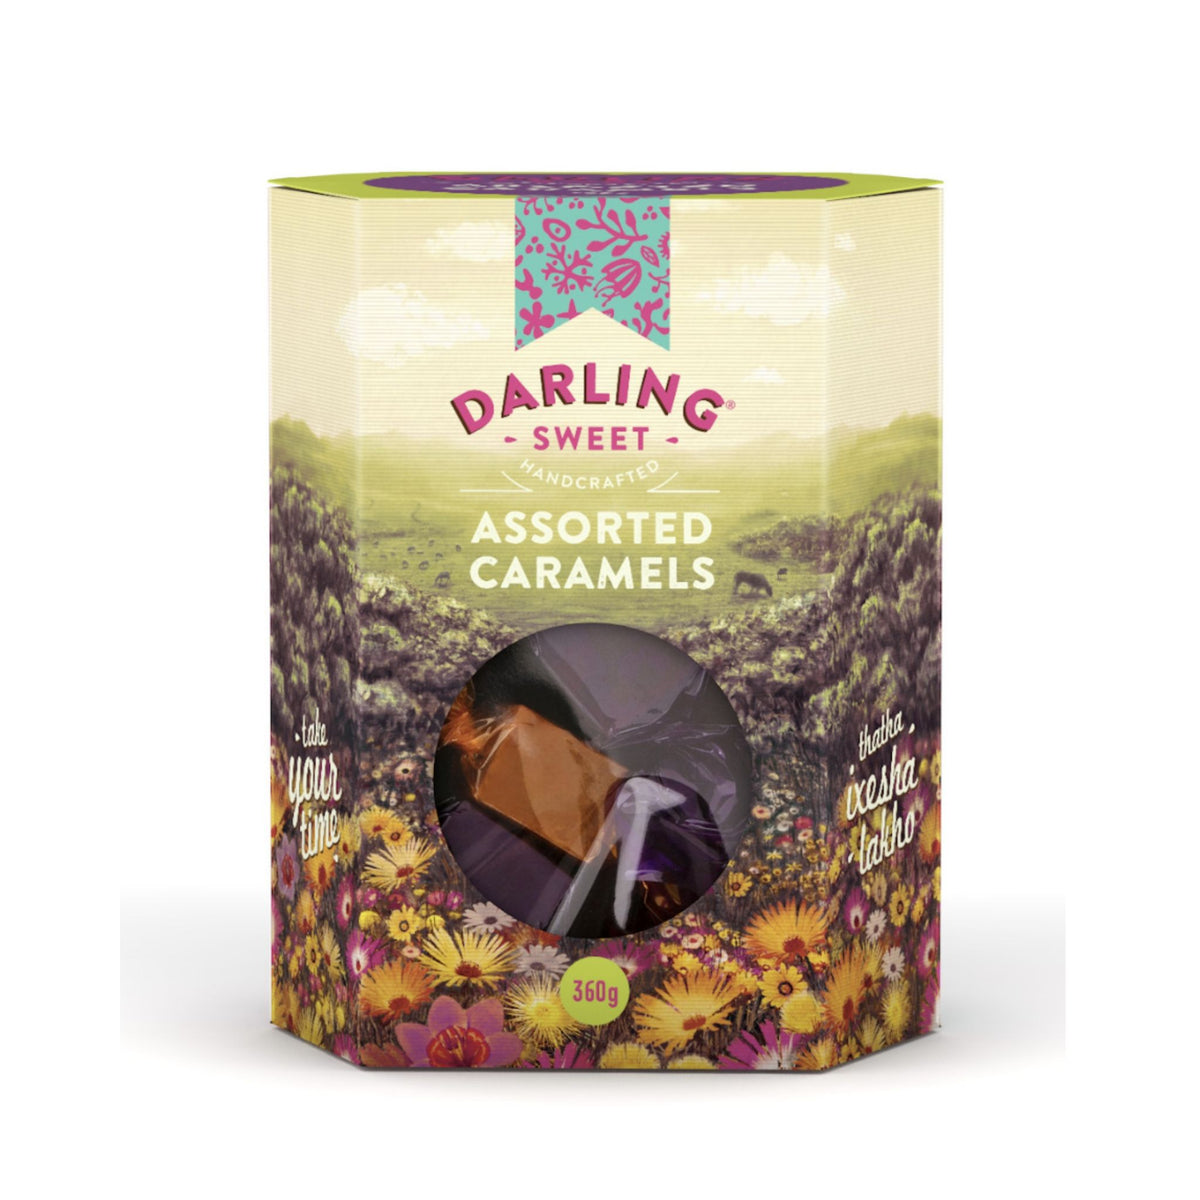 Darling Sweet Assorted Soft Caramels Gift Box (360g)